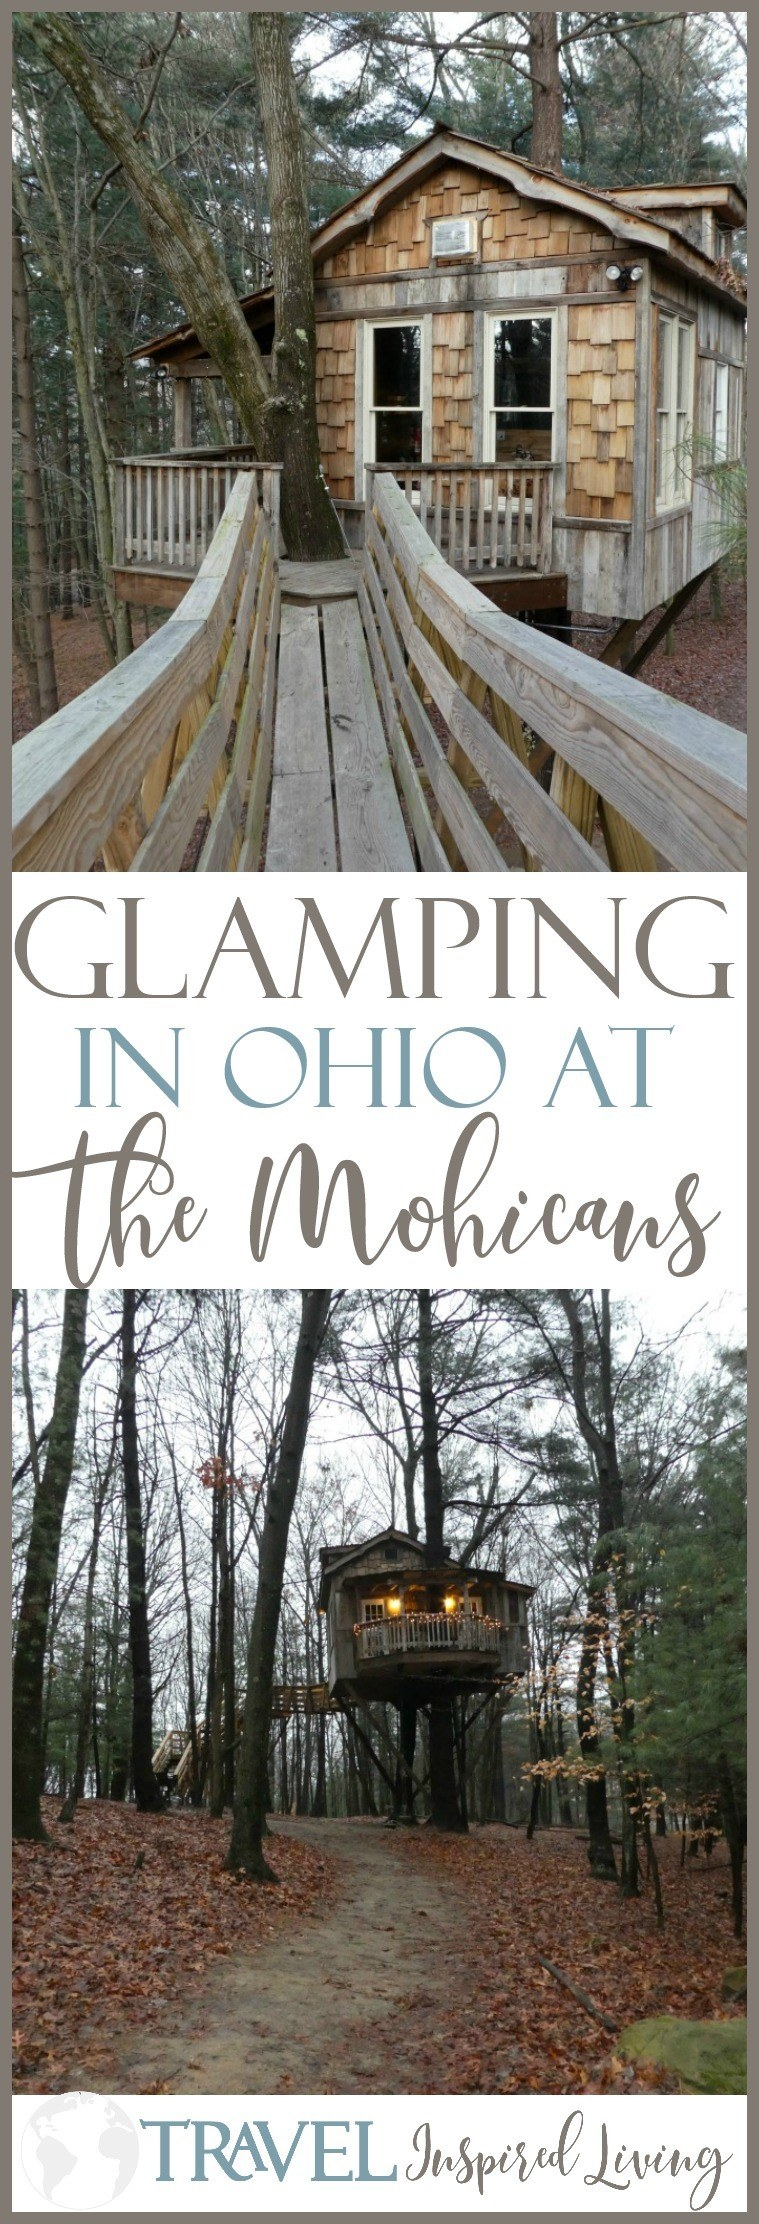 Glamping in Ohio? You bet! Spend the night in one of these Treehouses and go glamping at The Mohicans.